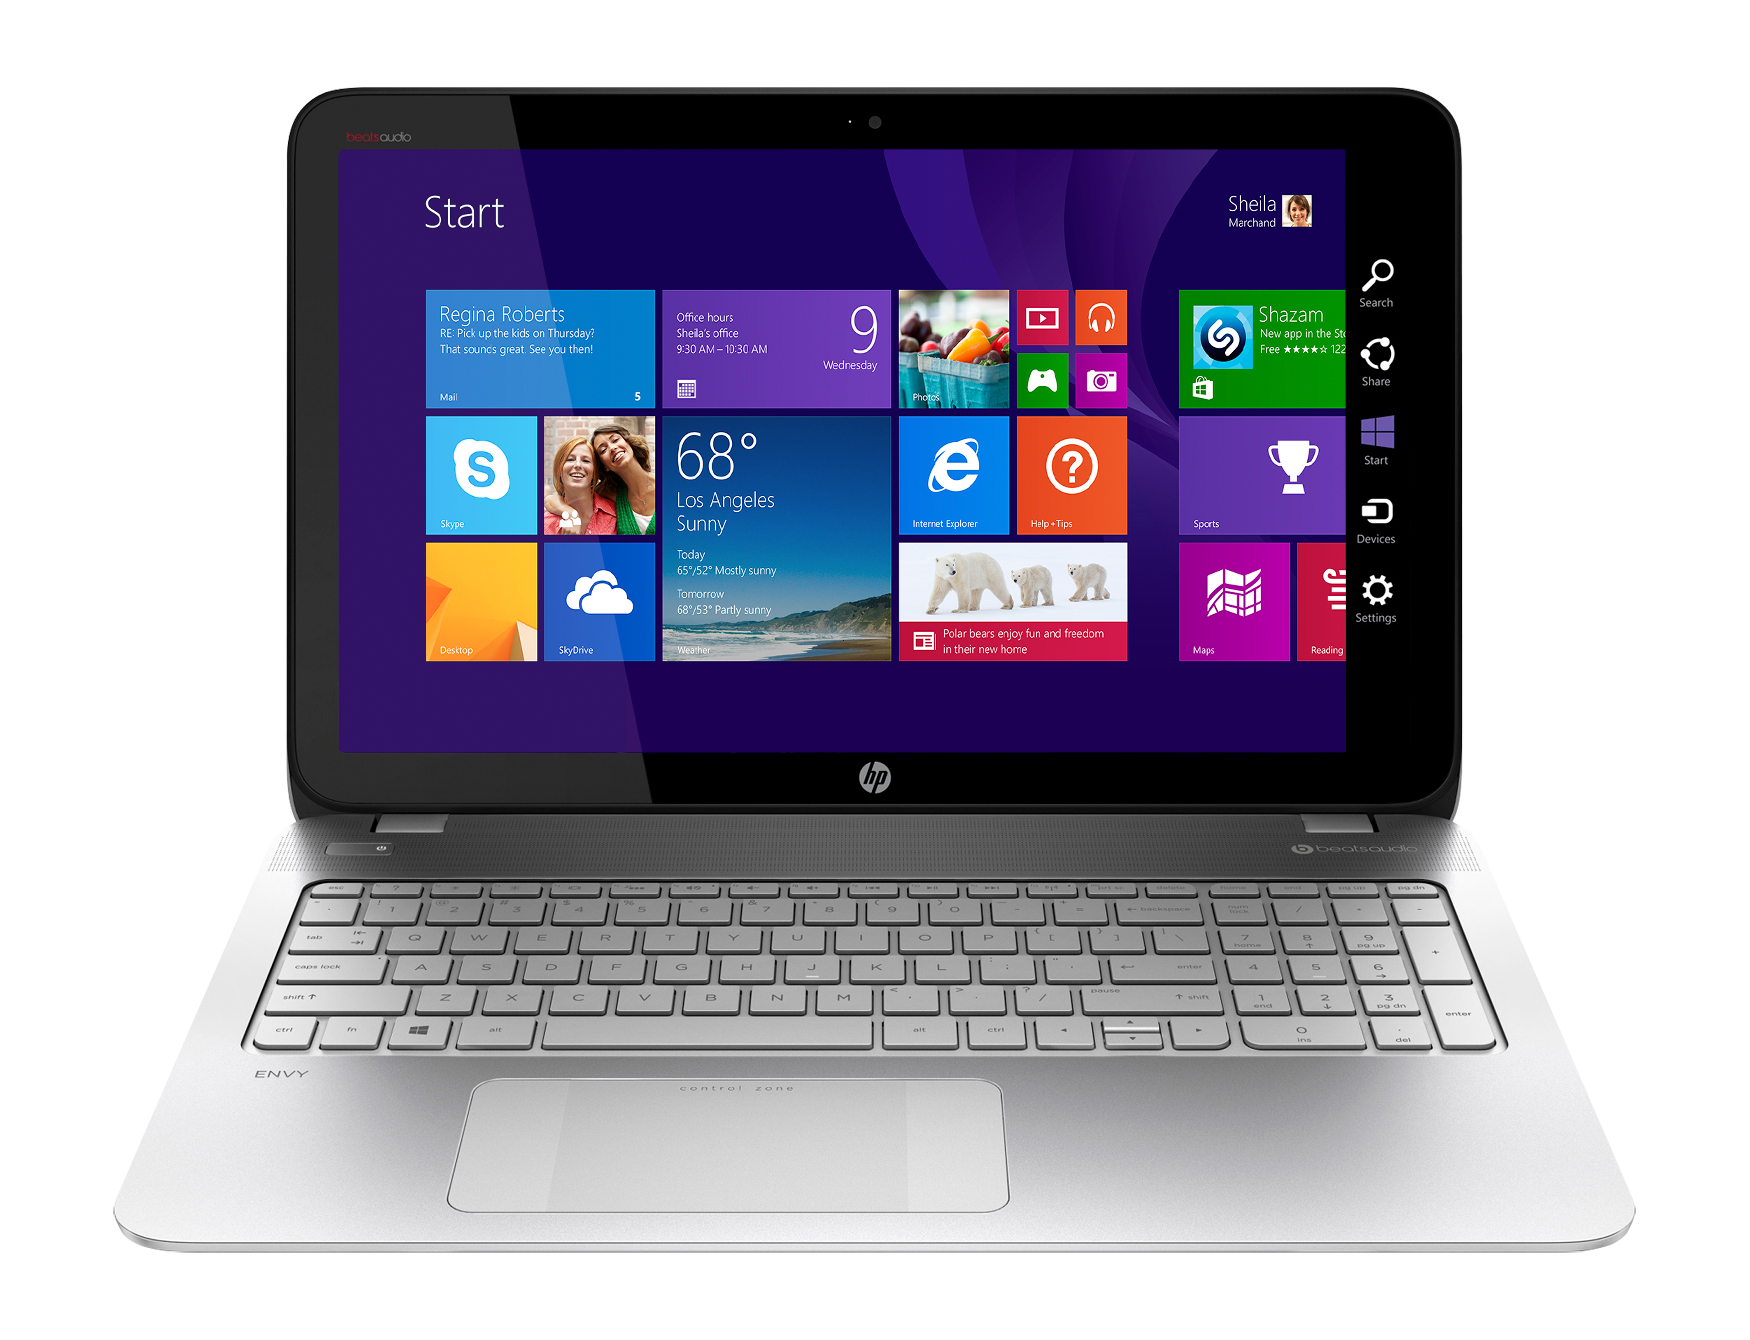 Check out the AMD FX APU- HP Envy Touchsmart Laptop at Best Buy